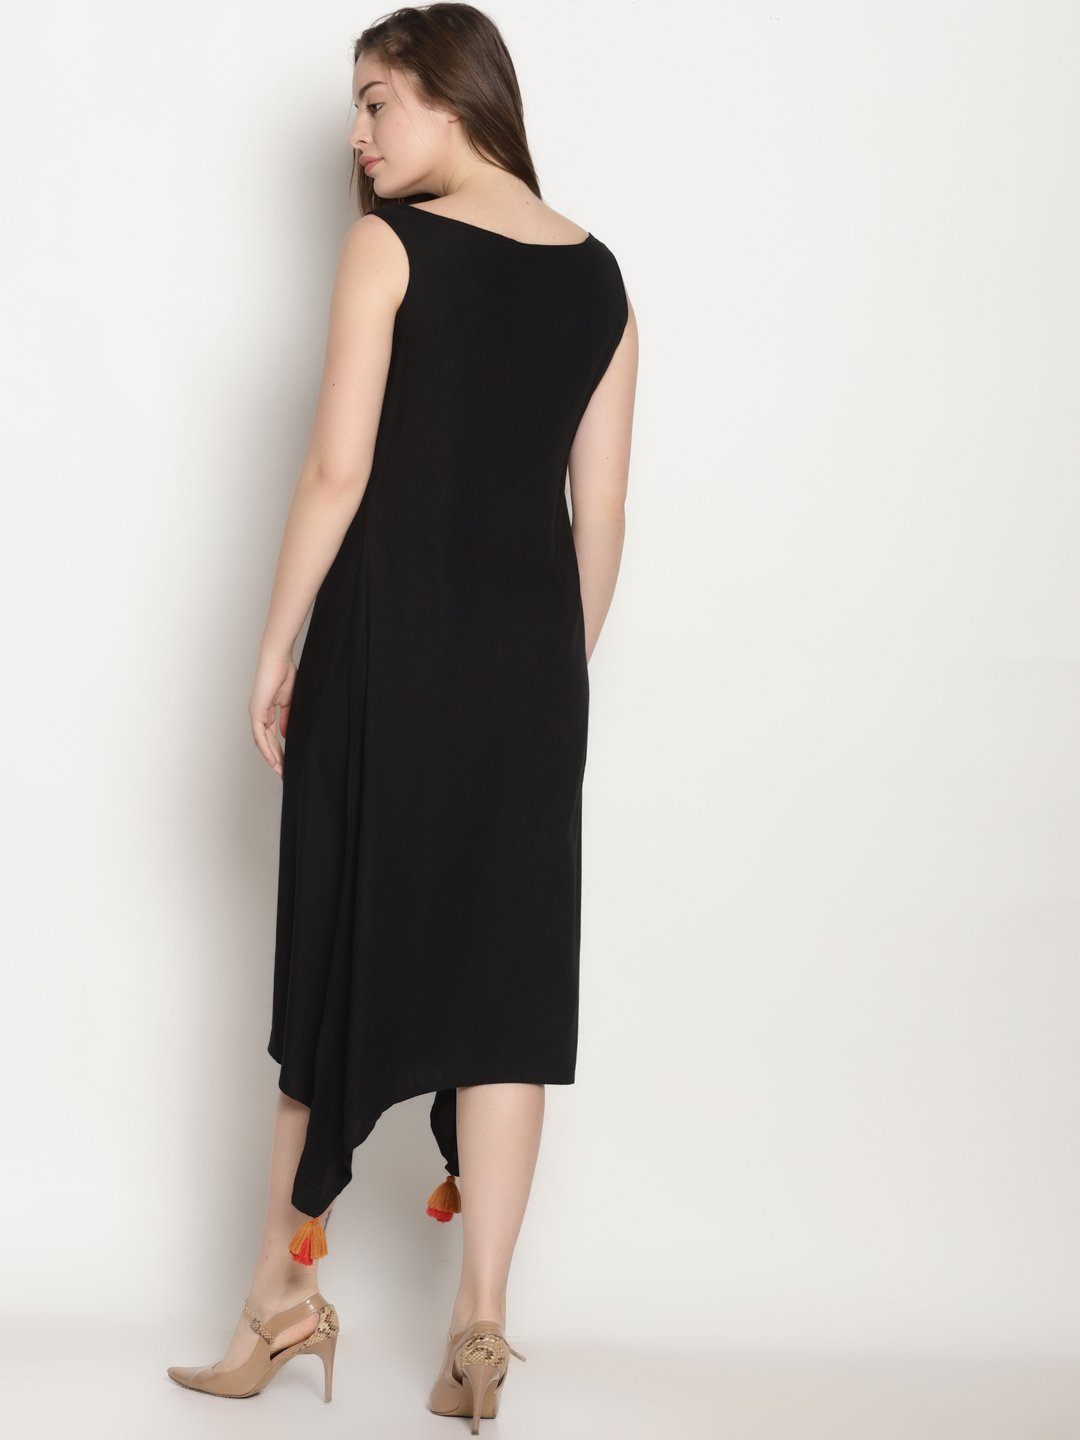 Black High Low Dress With Zari Embroidery | UNTUNG